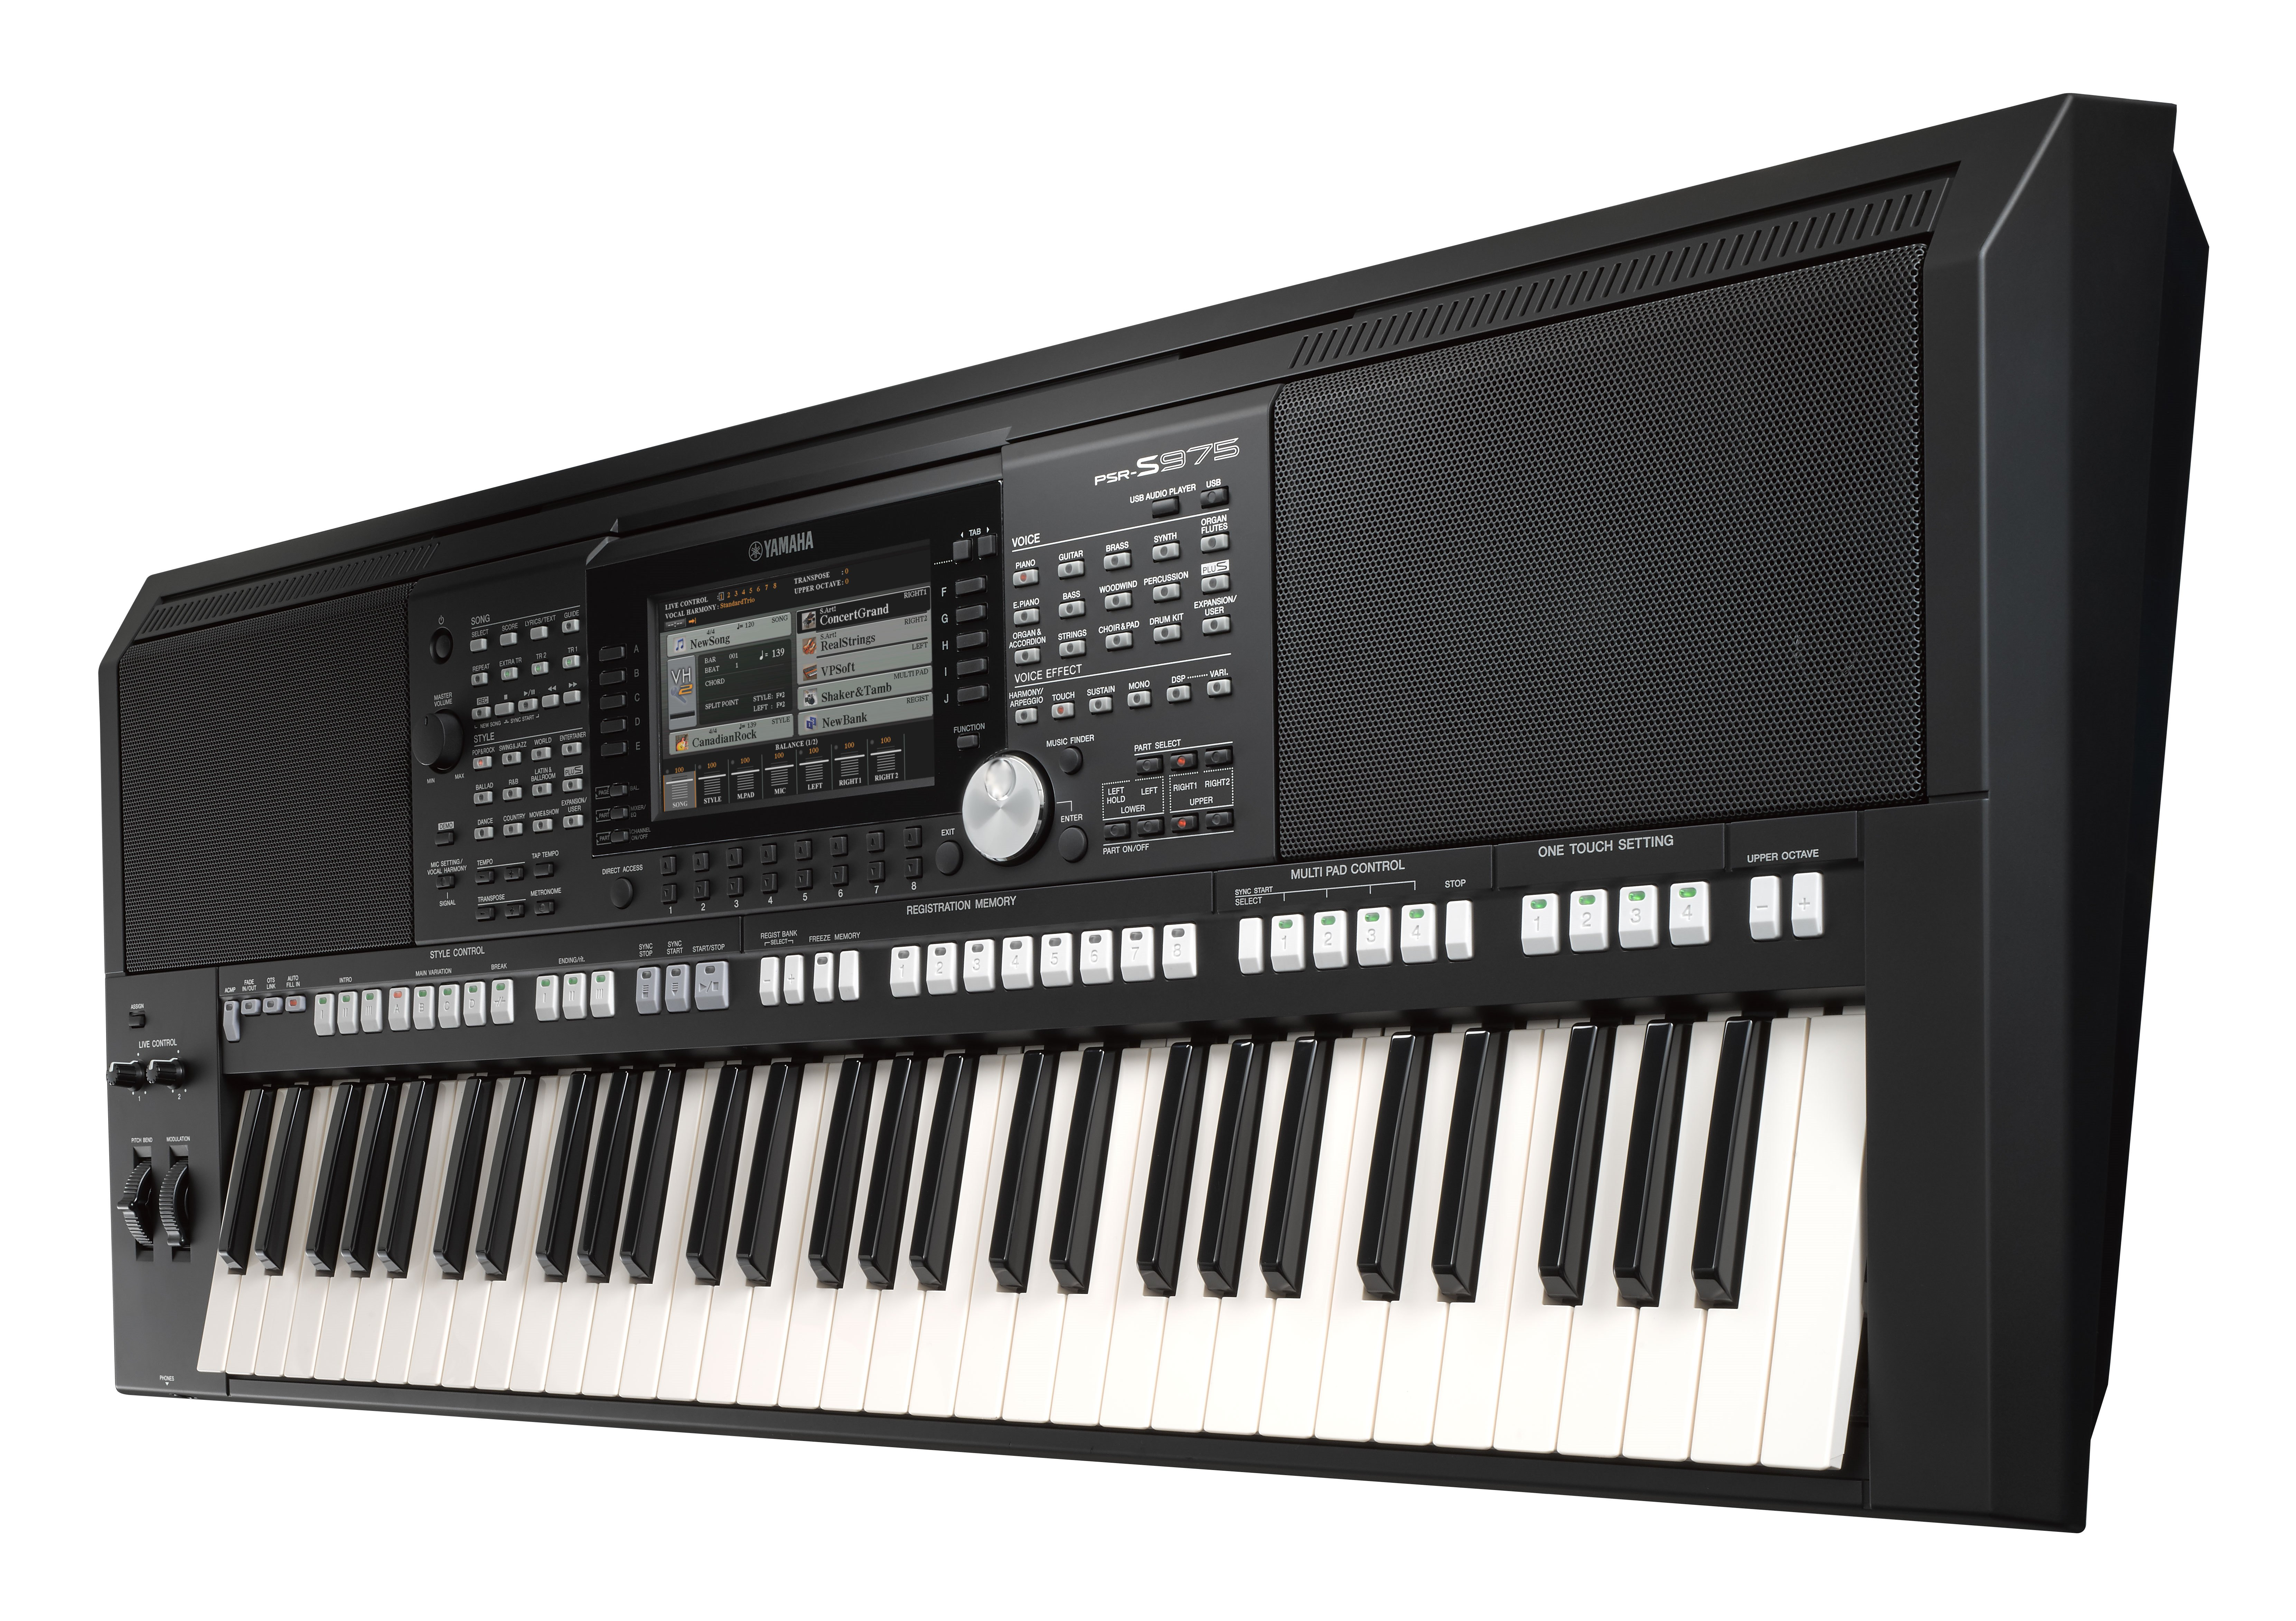 Psr S975 Overview Digital And Arranger Workstations Keyboard Surf Sound Synthesizer Previous